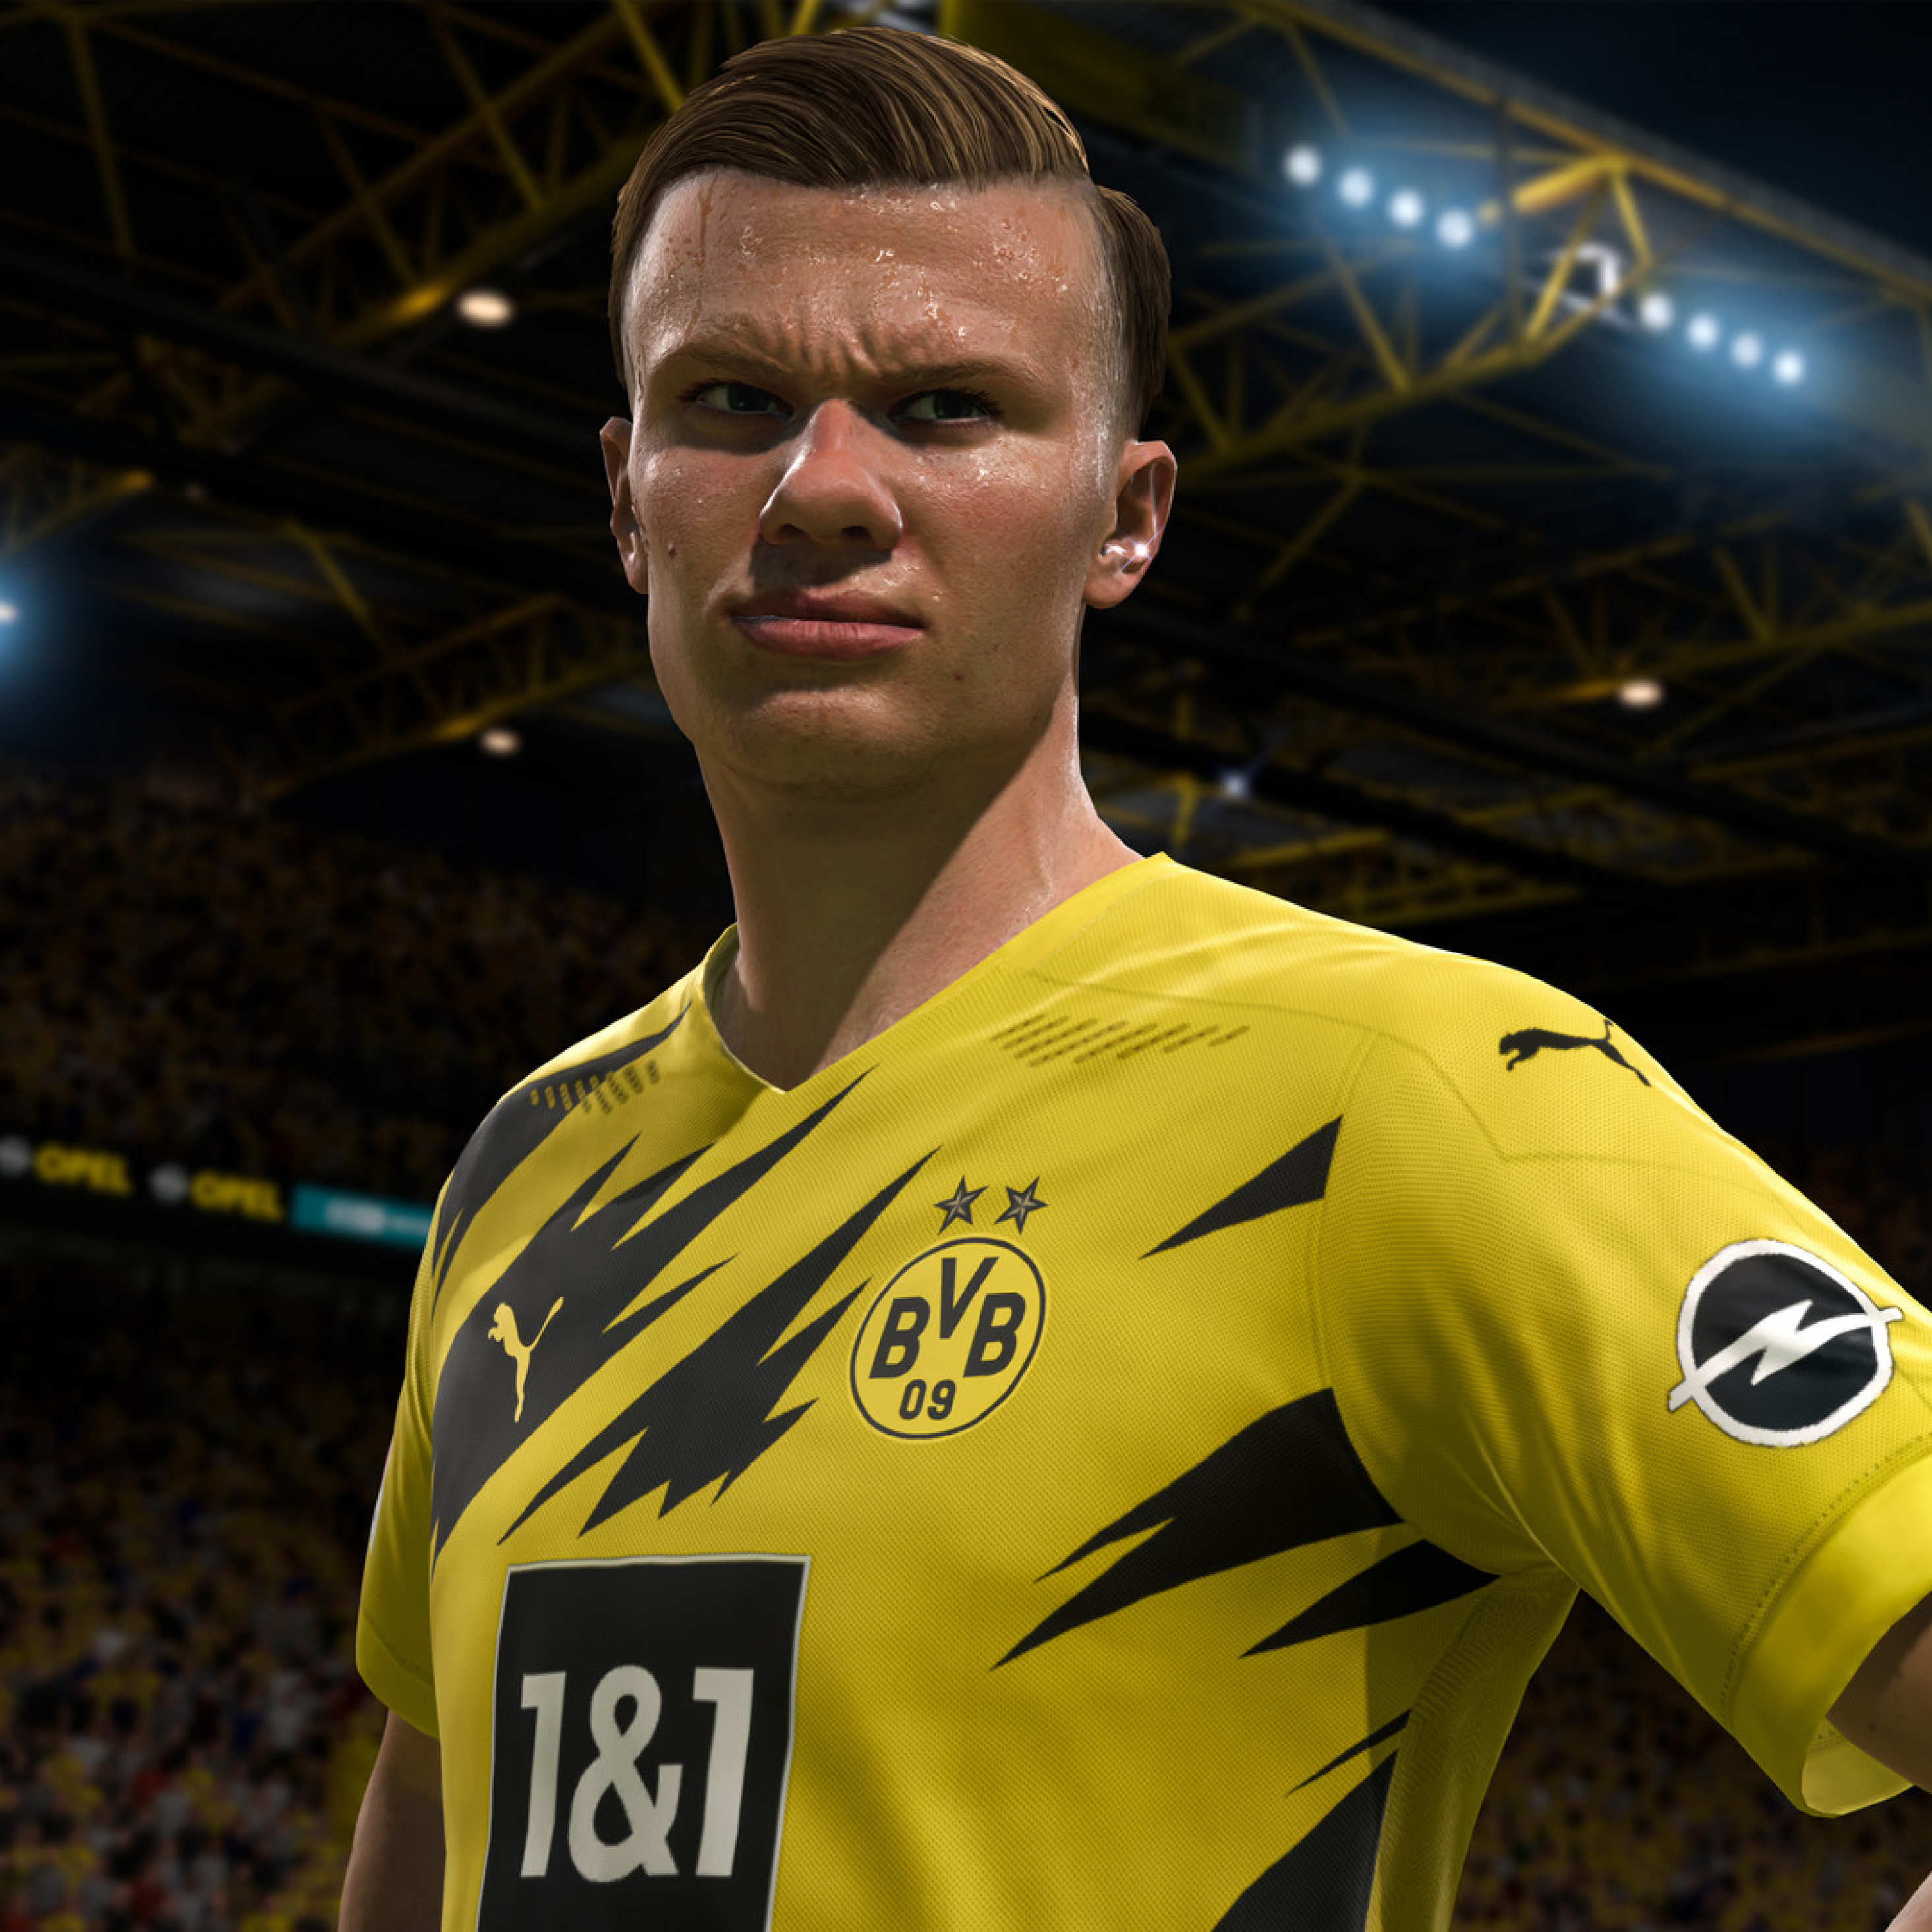 2932x2932 Fifa 21 Erling Braut Haland Ipad Pro Retina Display Wallpaper Hd Games 4k Wallpapers Images Photos And Background